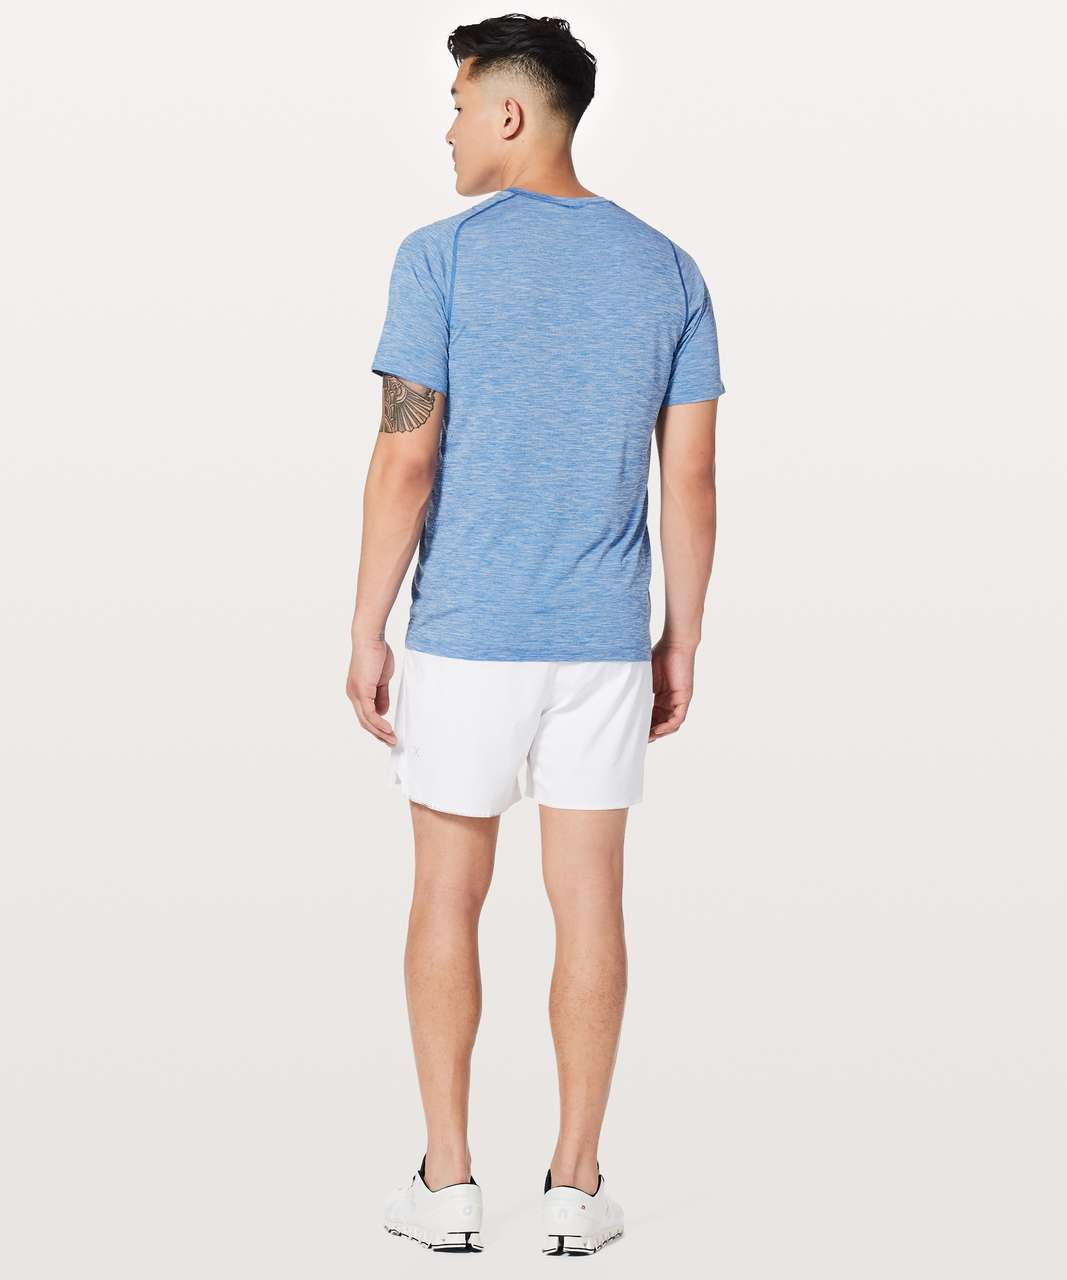 Lululemon Metal Vent Tech Surge Short Sleeve - Admiral Blue / White